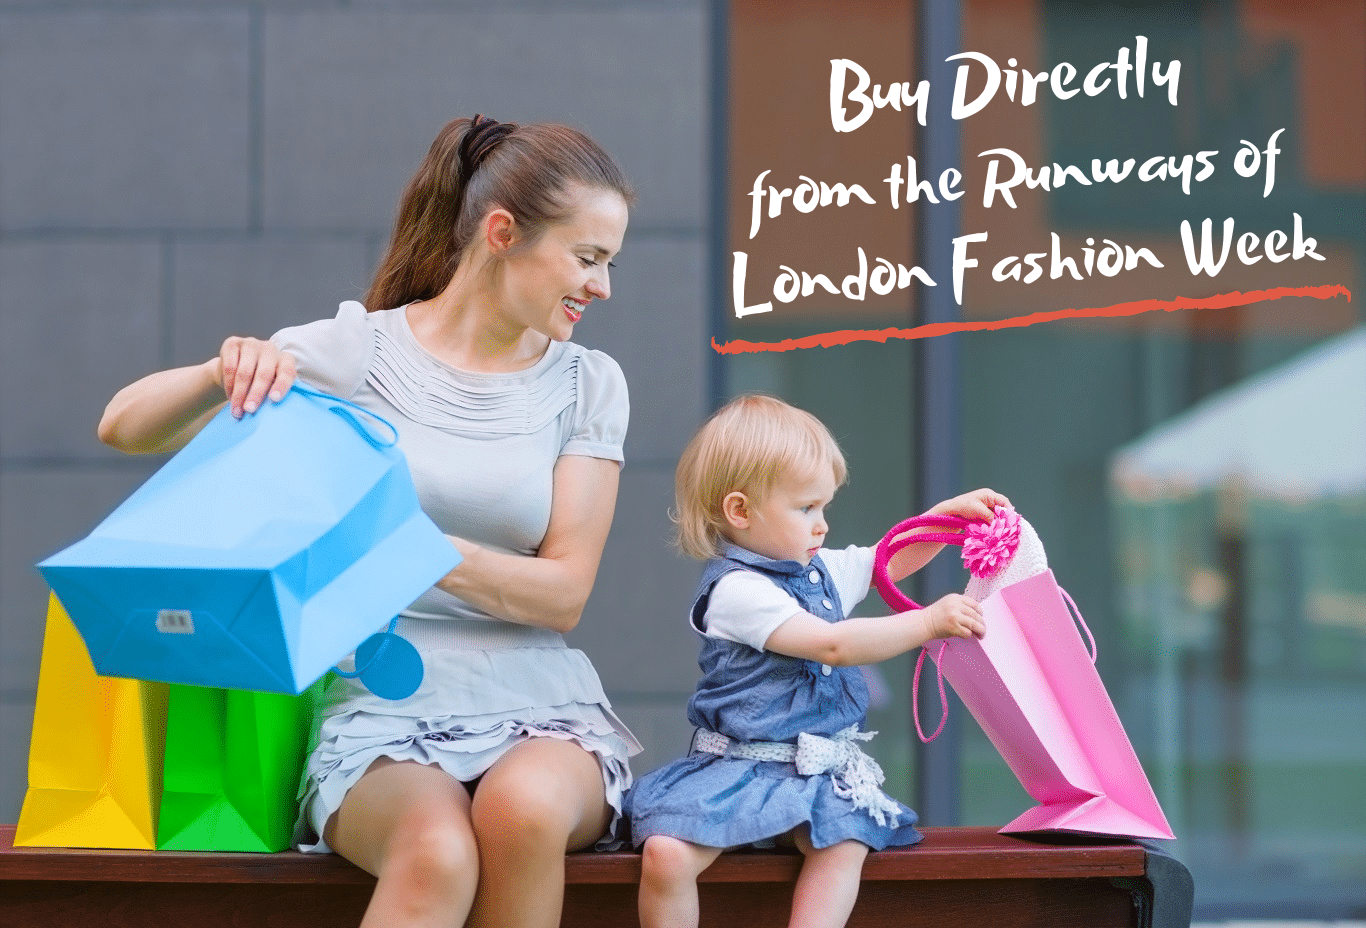 Buy Directly from the Runways of London Fashion Week